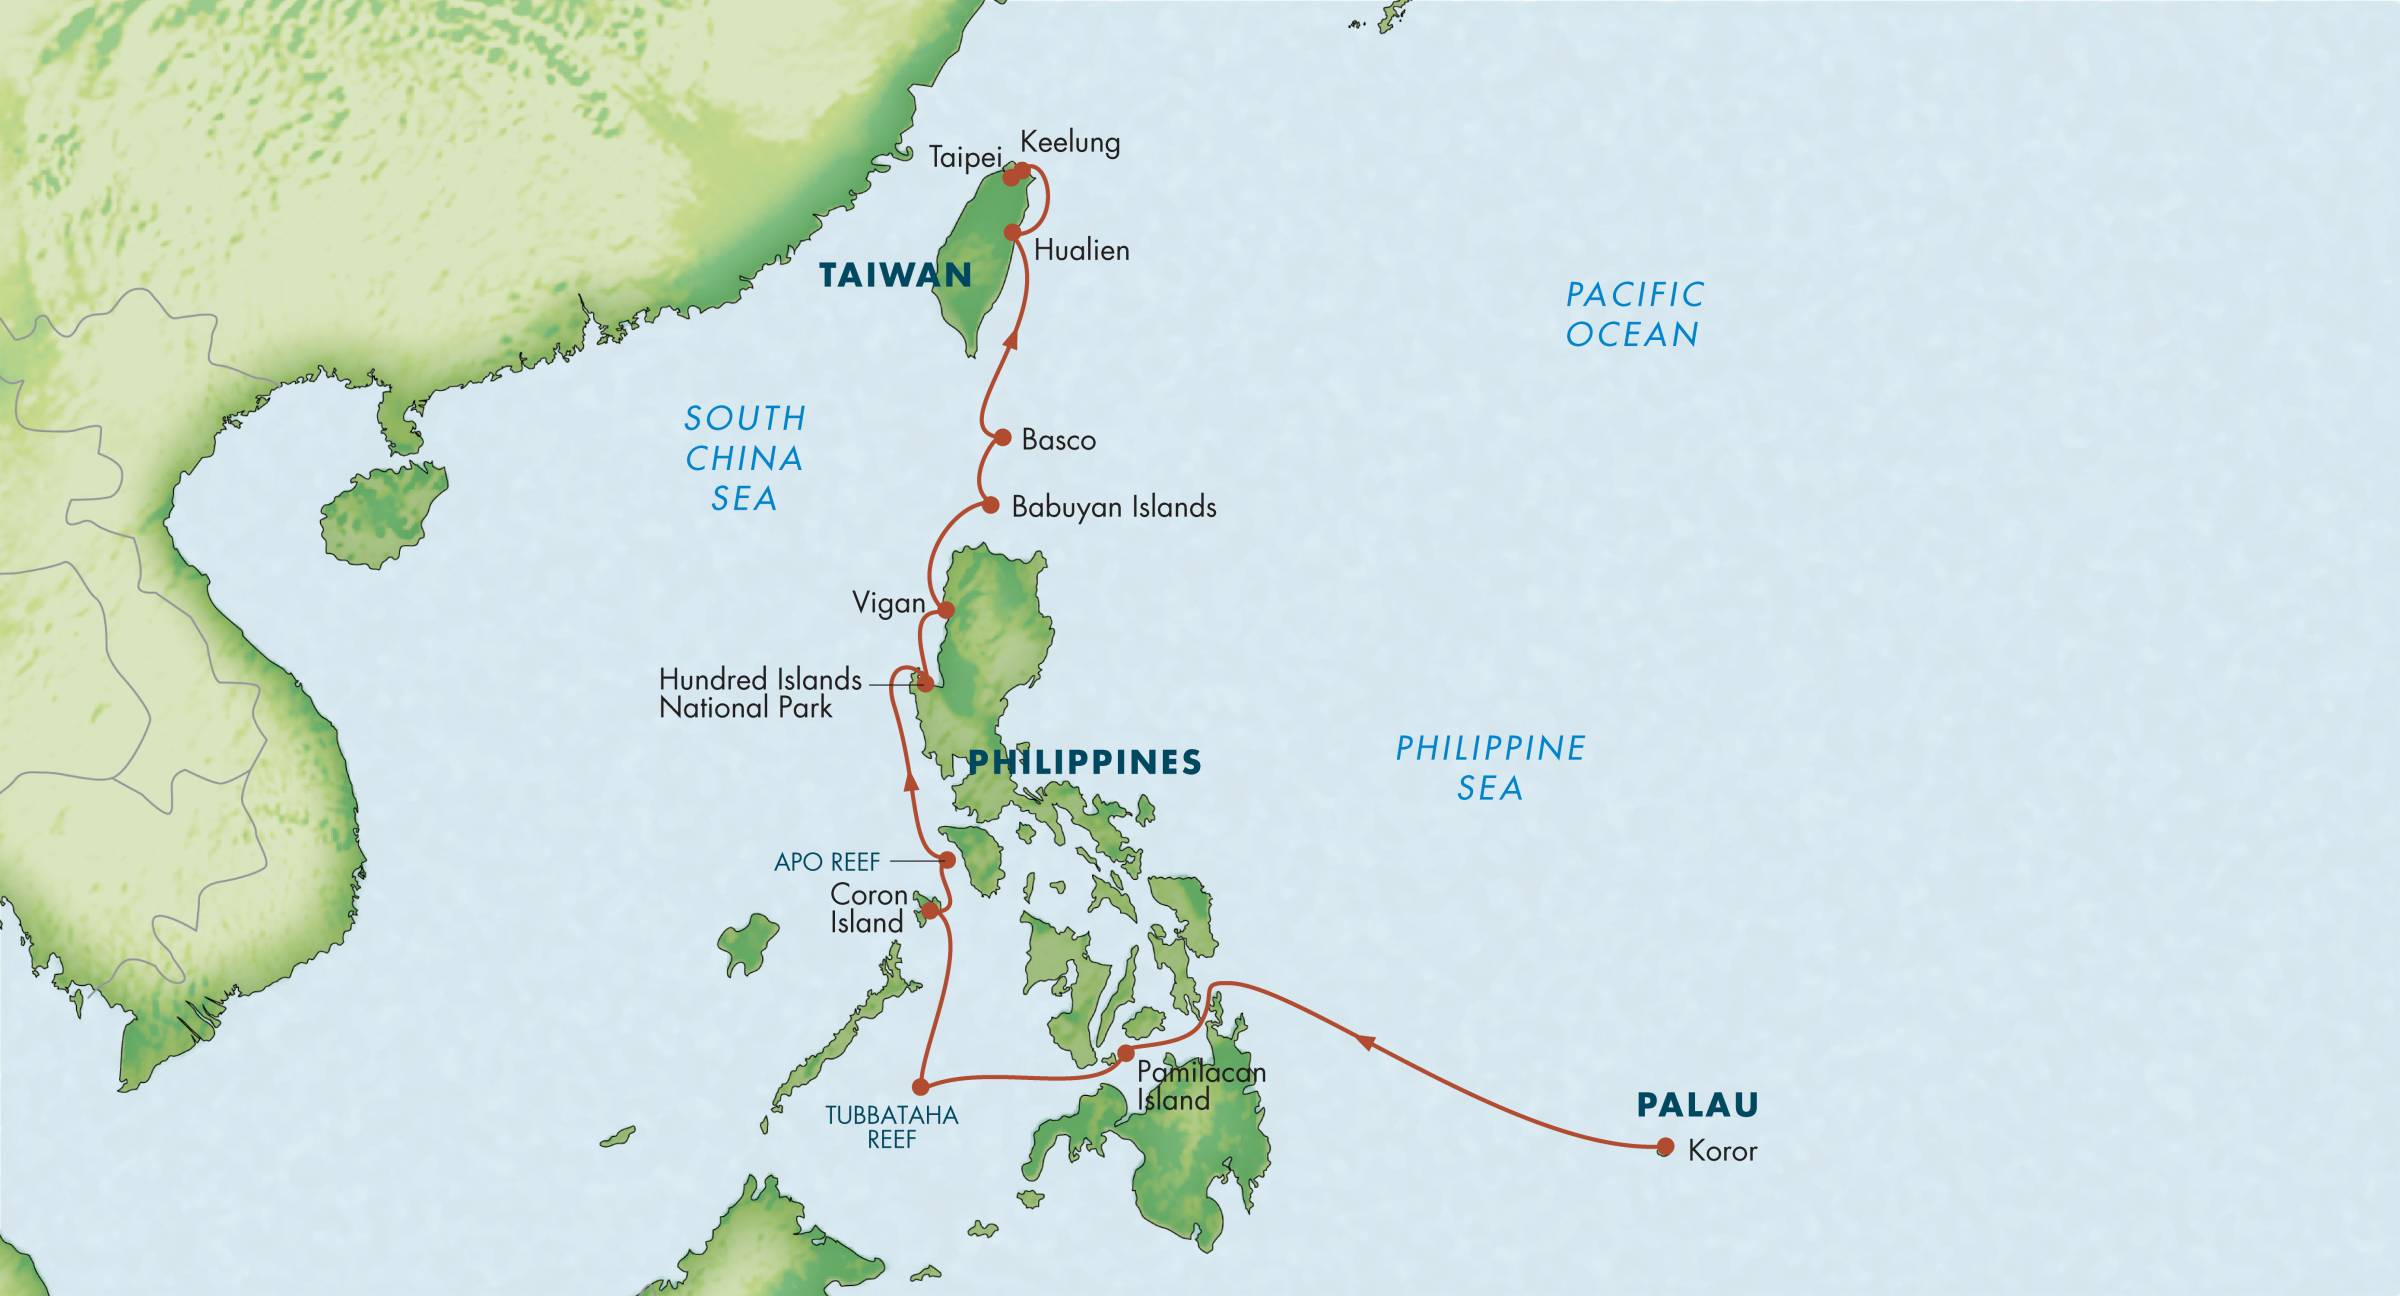 Map for Philippines with Palau & Taiwan